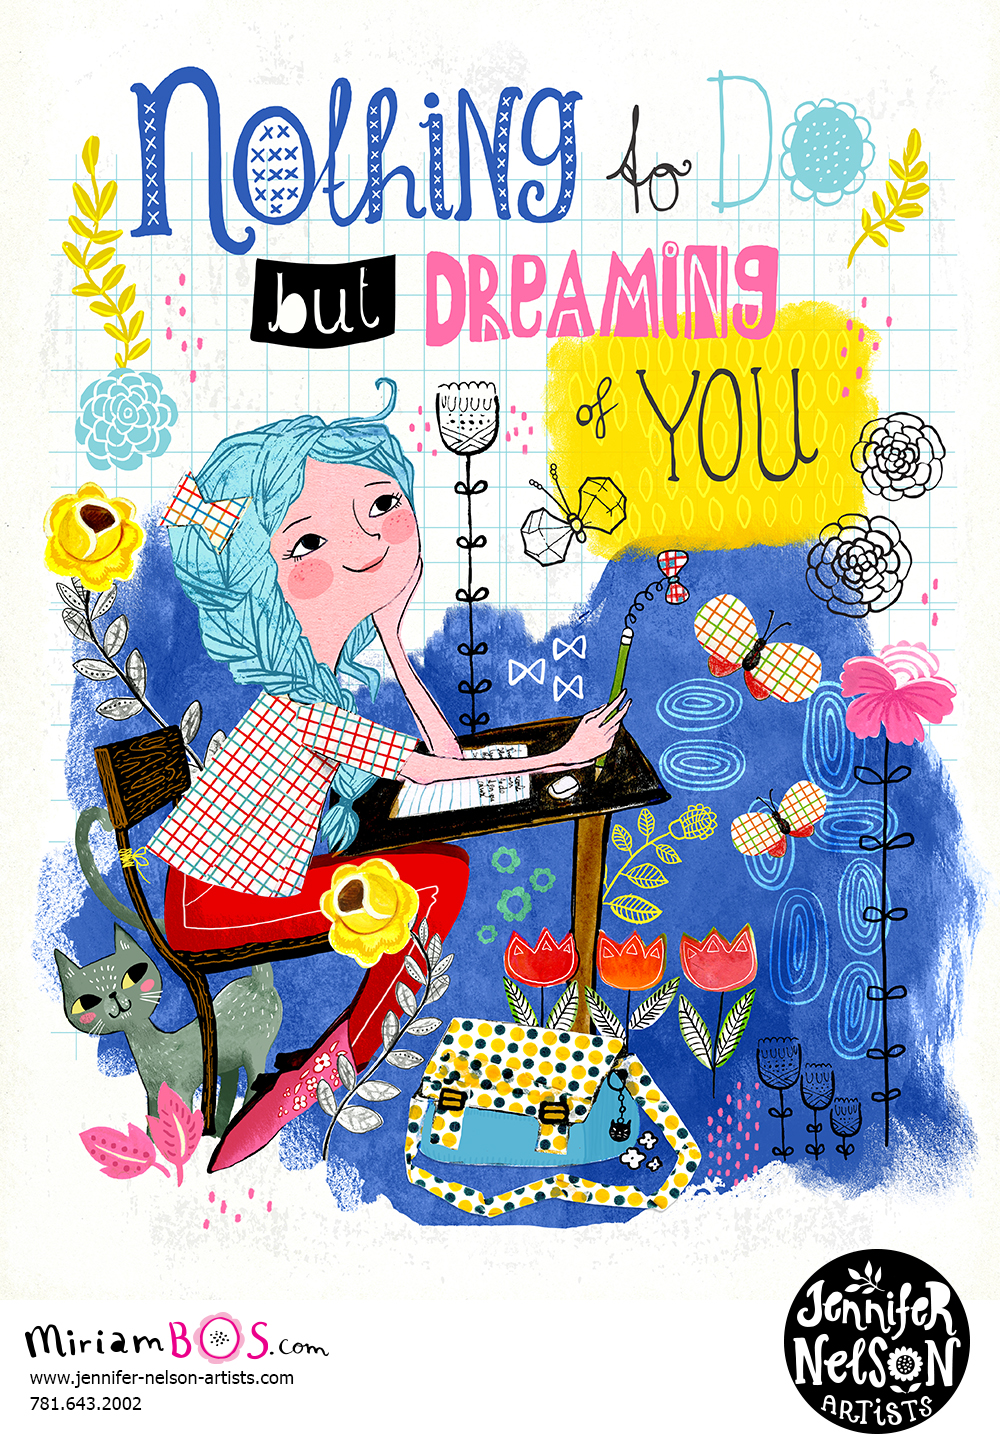 MiriamBos_web-quote-dreaming-of-you